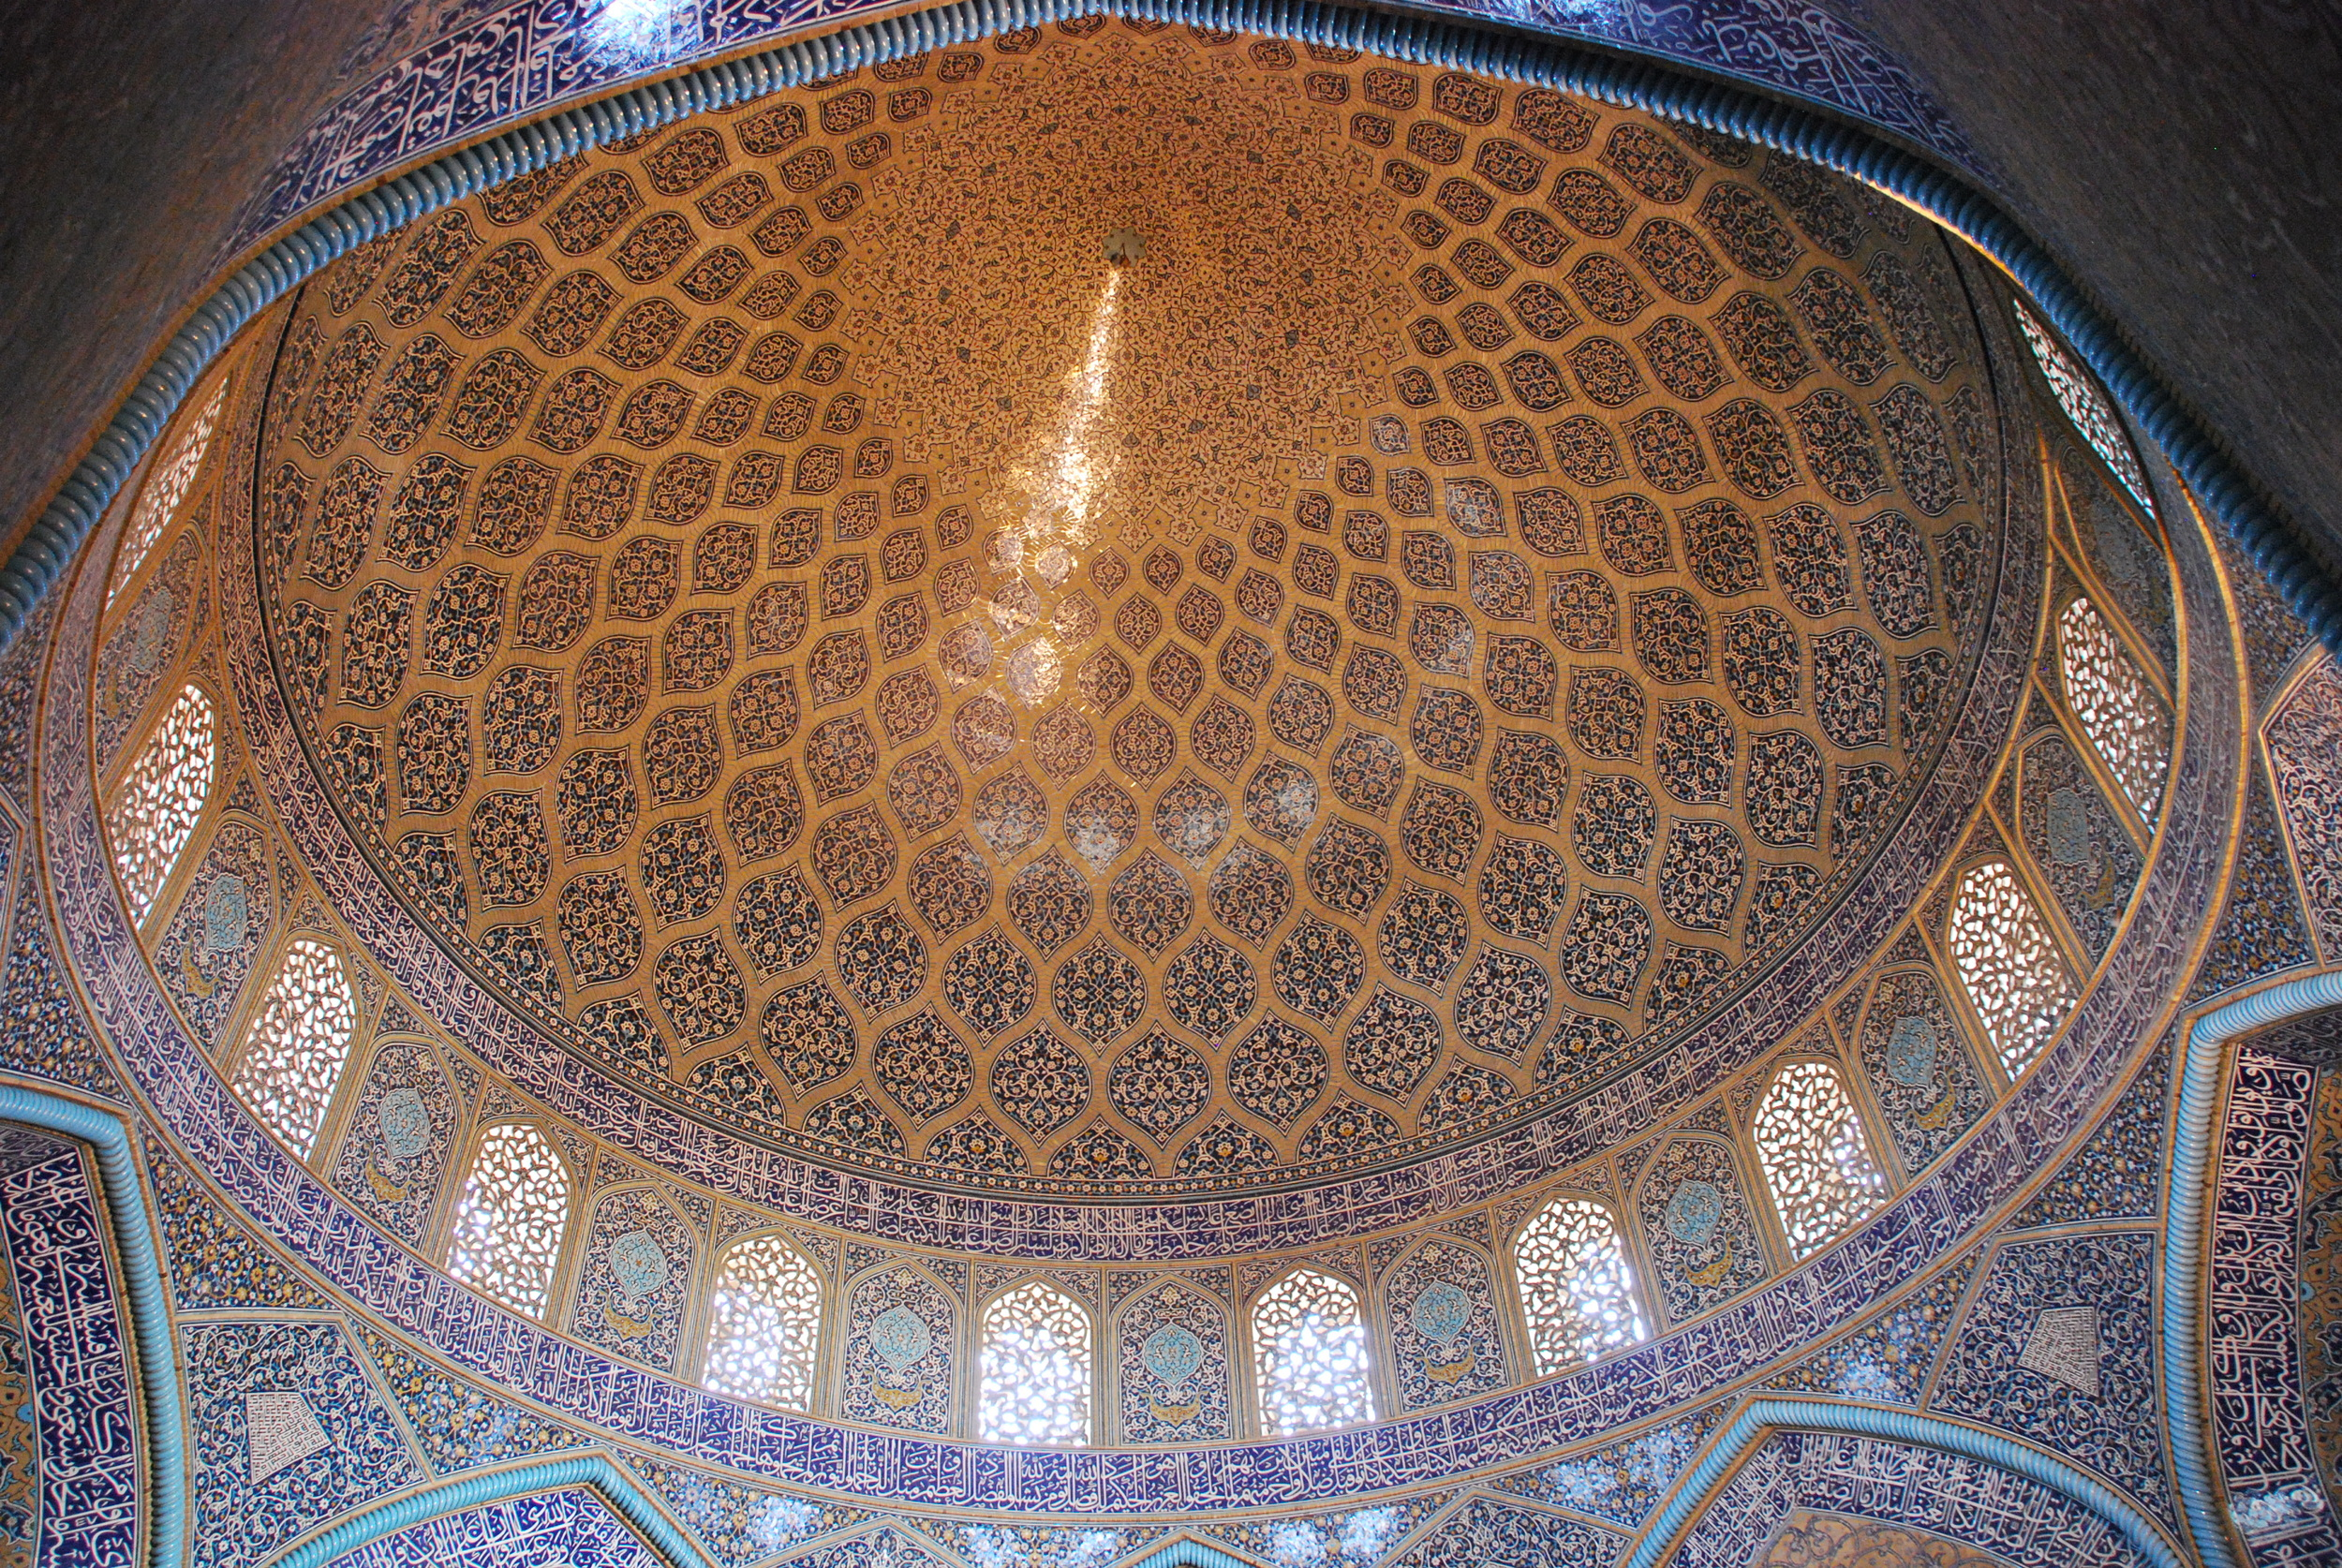 Inside Sheikh Lotfollah Mosque - Naghsh-e Jahan Square, Isfahan